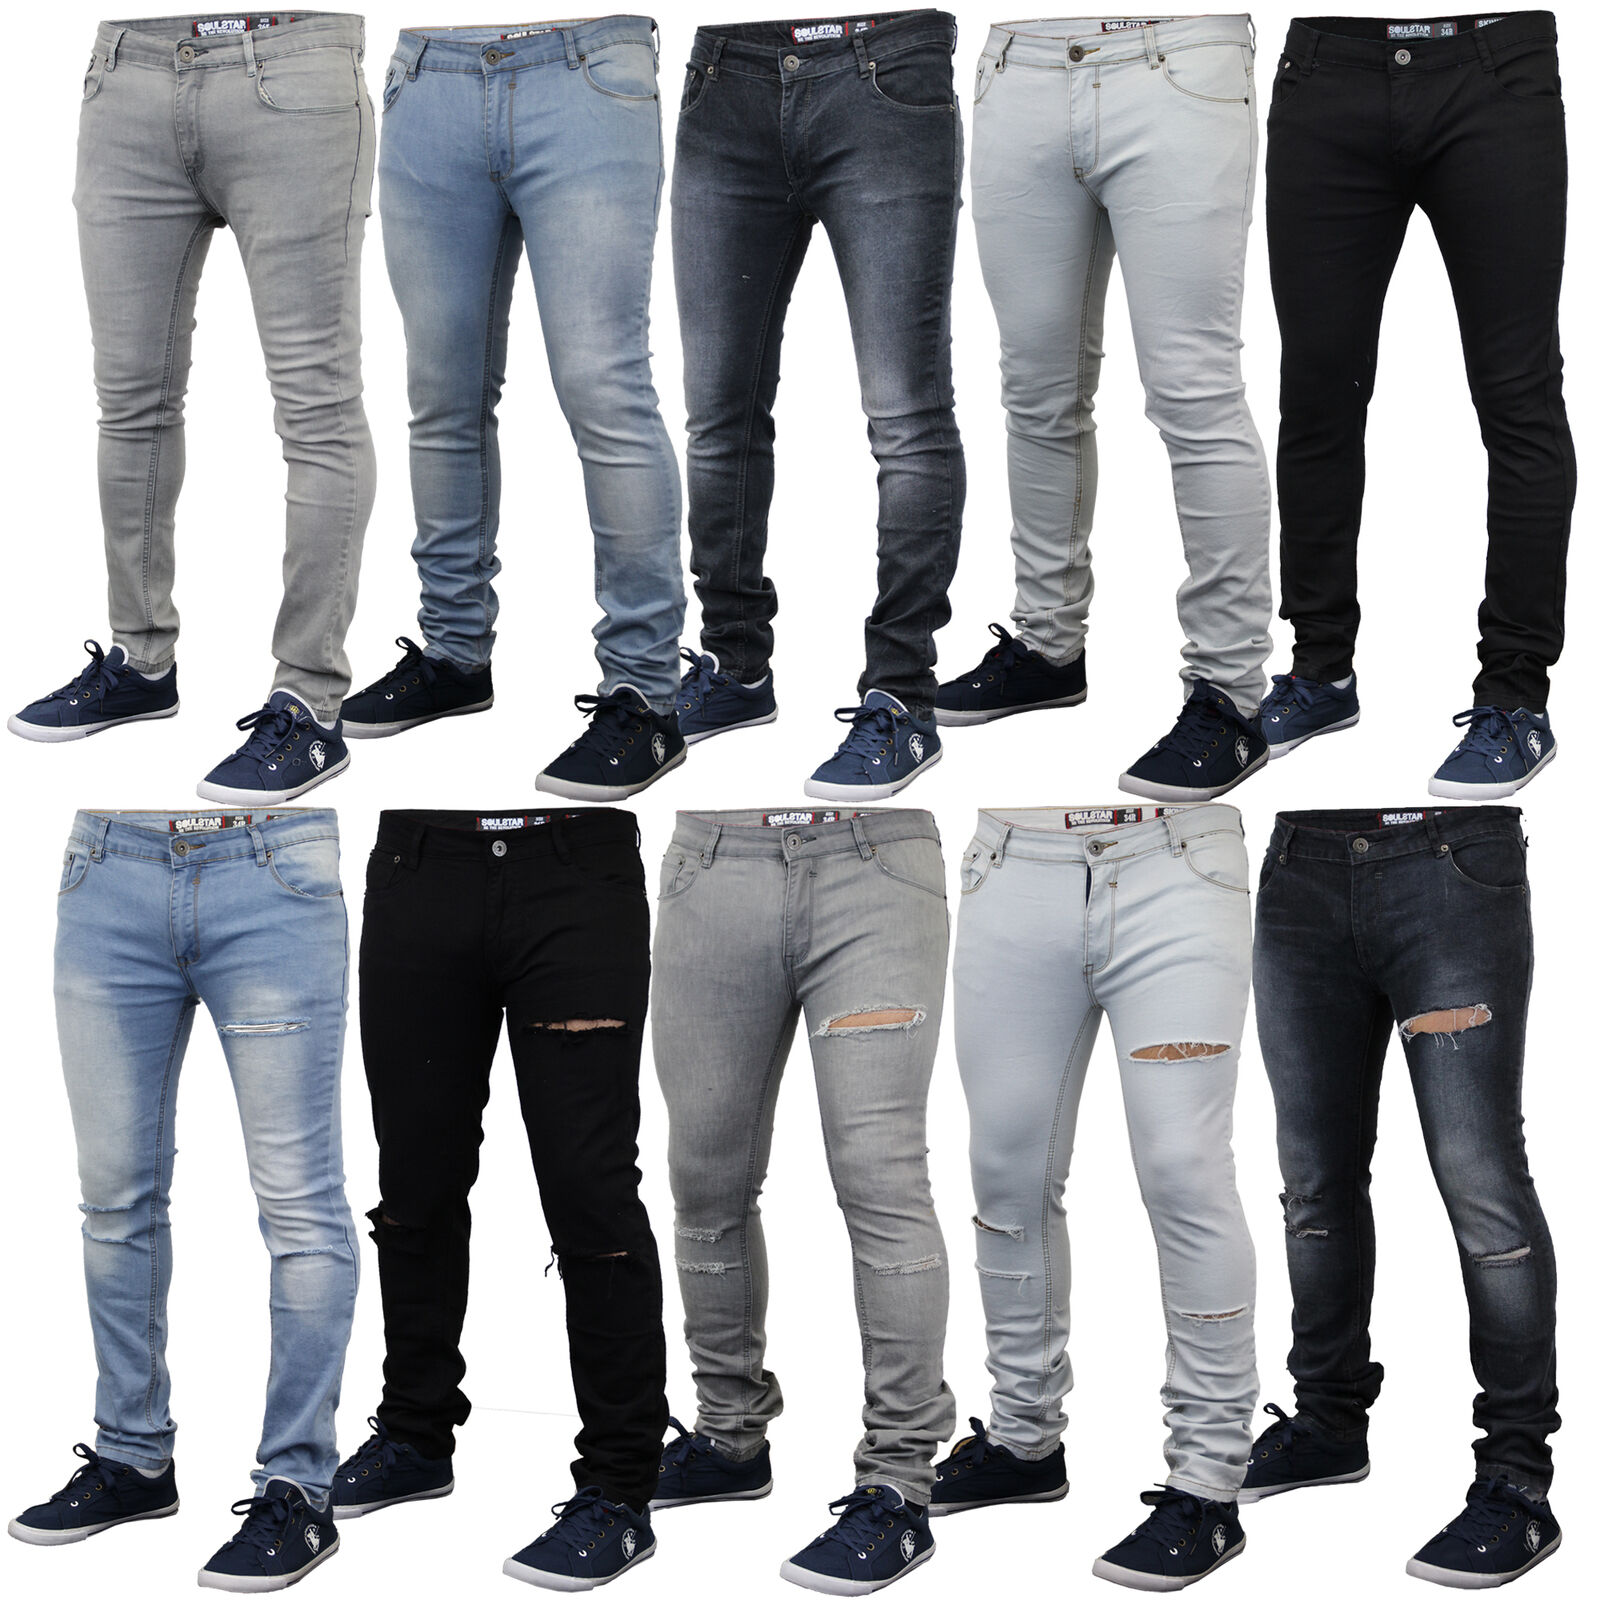 Mens ripped denim skinny fit jeans by Soul Star